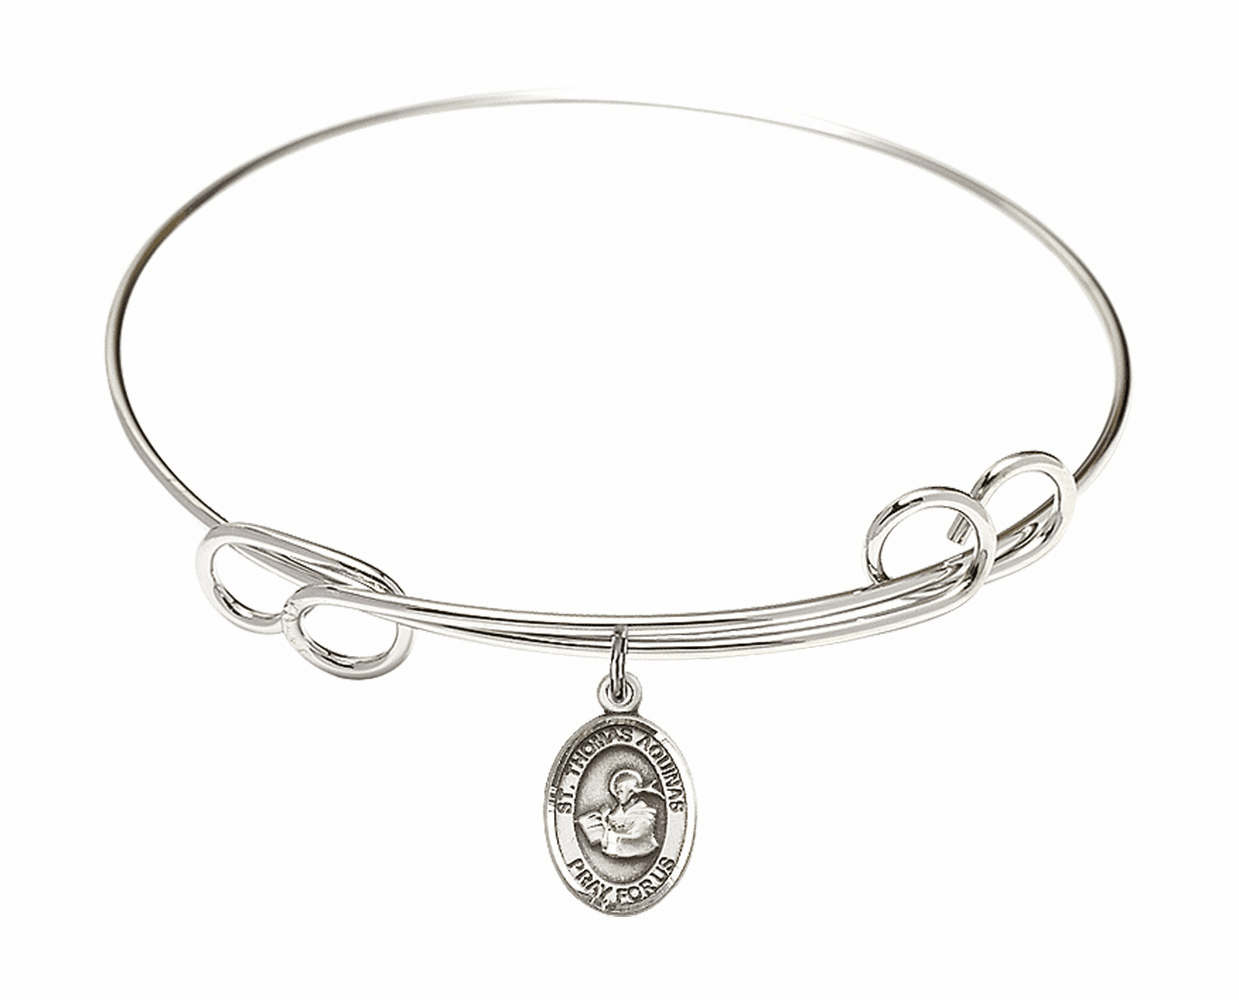 Round Loop St Thomas Aquinas Bangle Charm Bracelet by Bliss